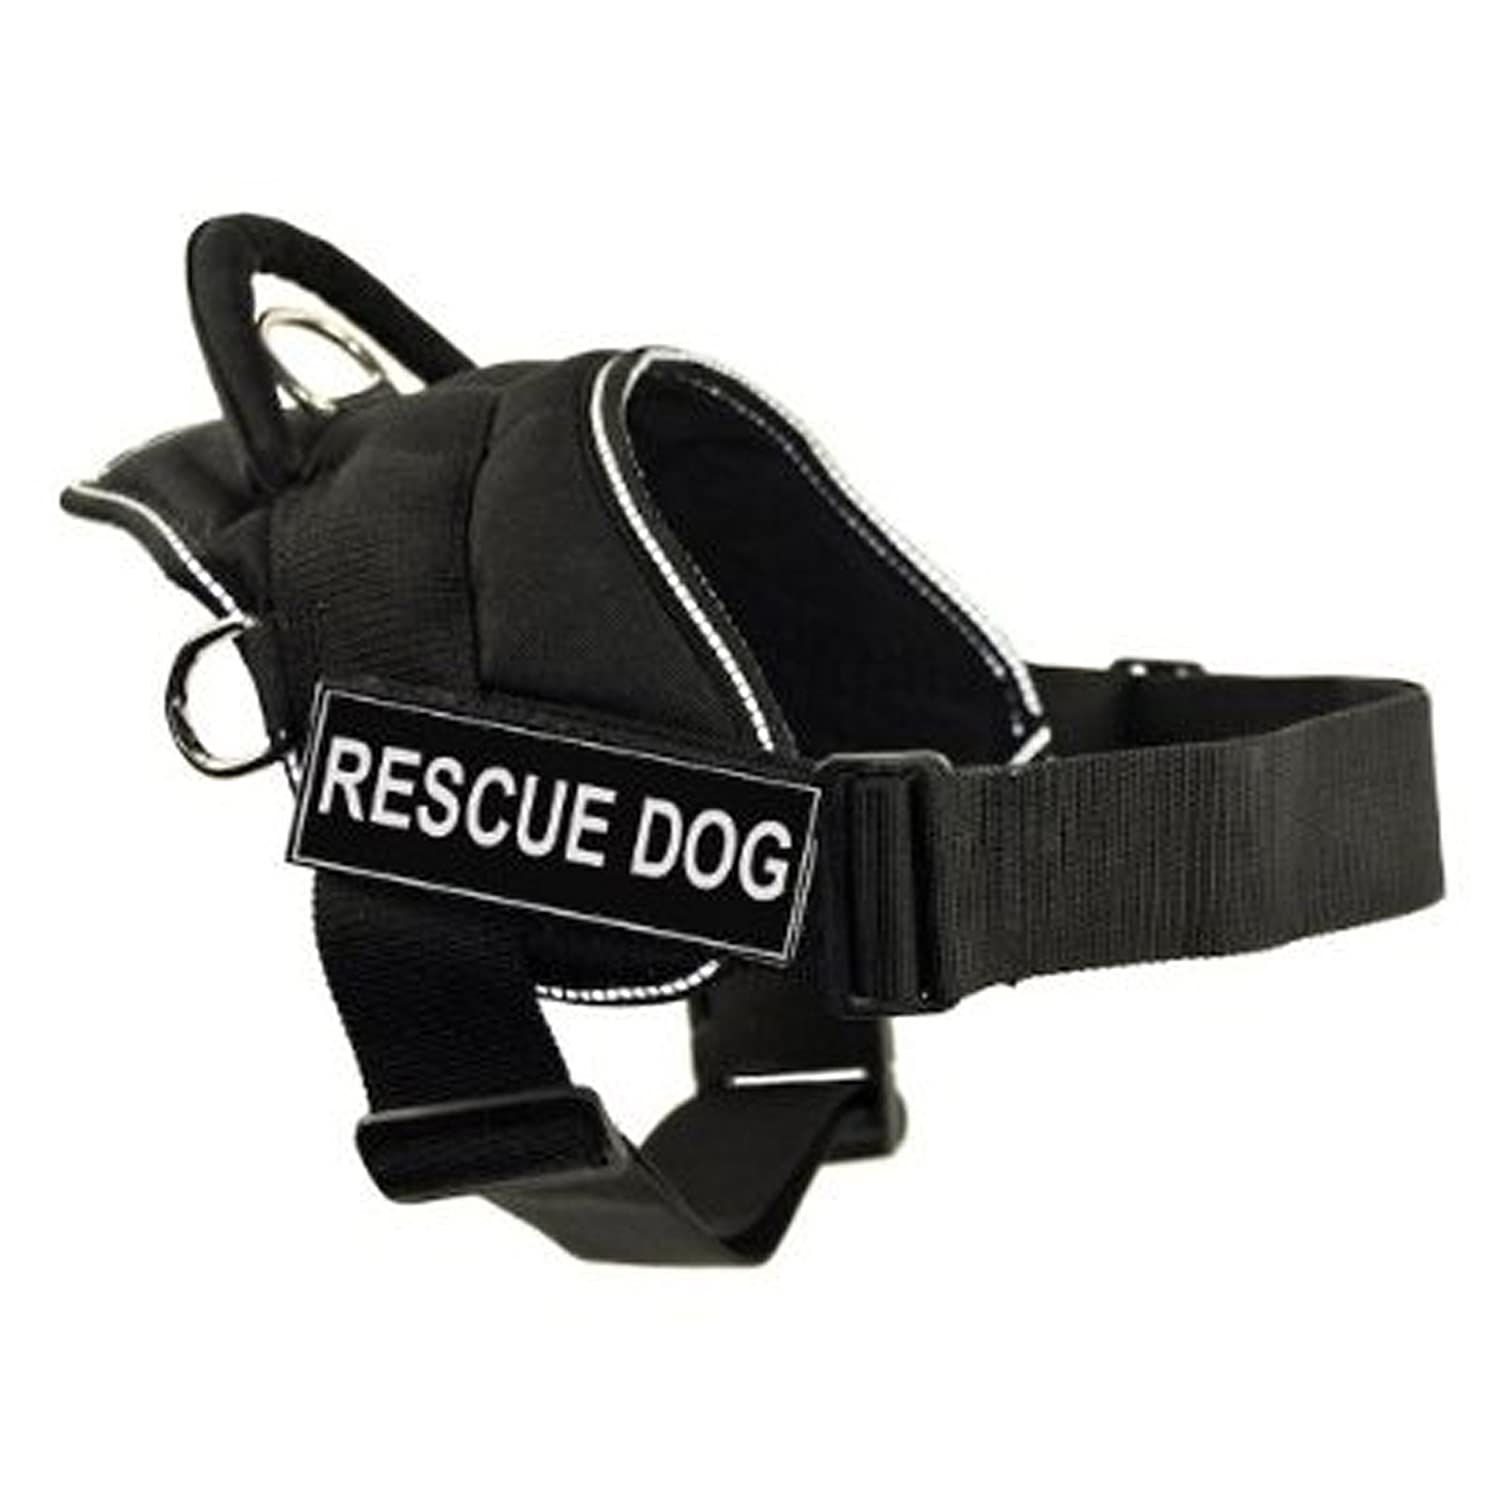 Dean & Tyler DT Fun Works Harness, Rescue Dog, Black With Reflective Trim, XX-Small Fits Girth Size  18-Inch to 22-Inch